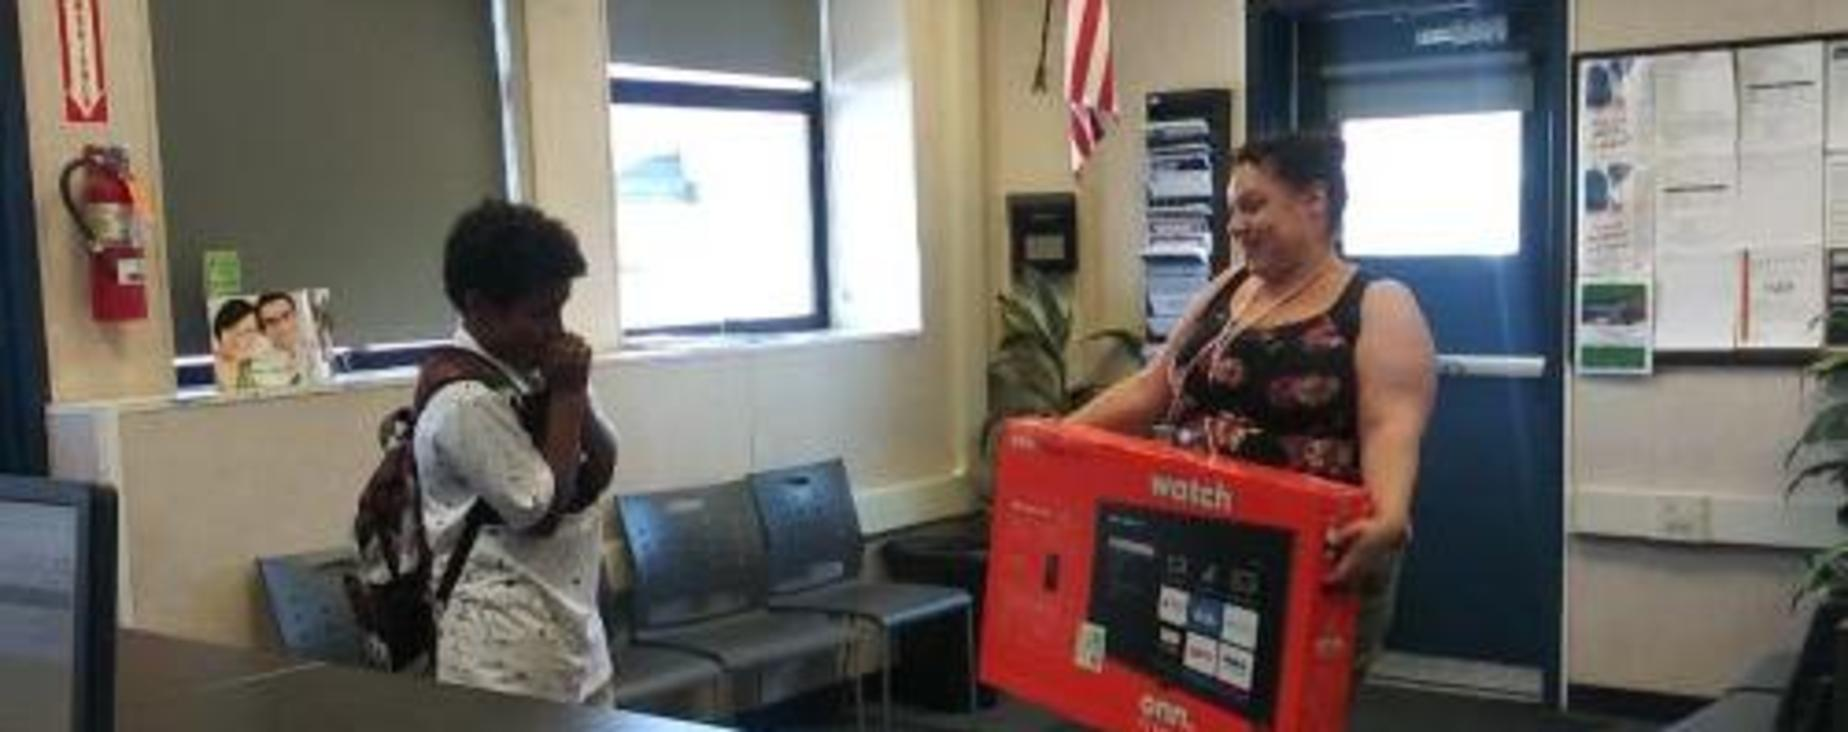 Atendance raffle winner surprised to learn that he won a new smart tv.